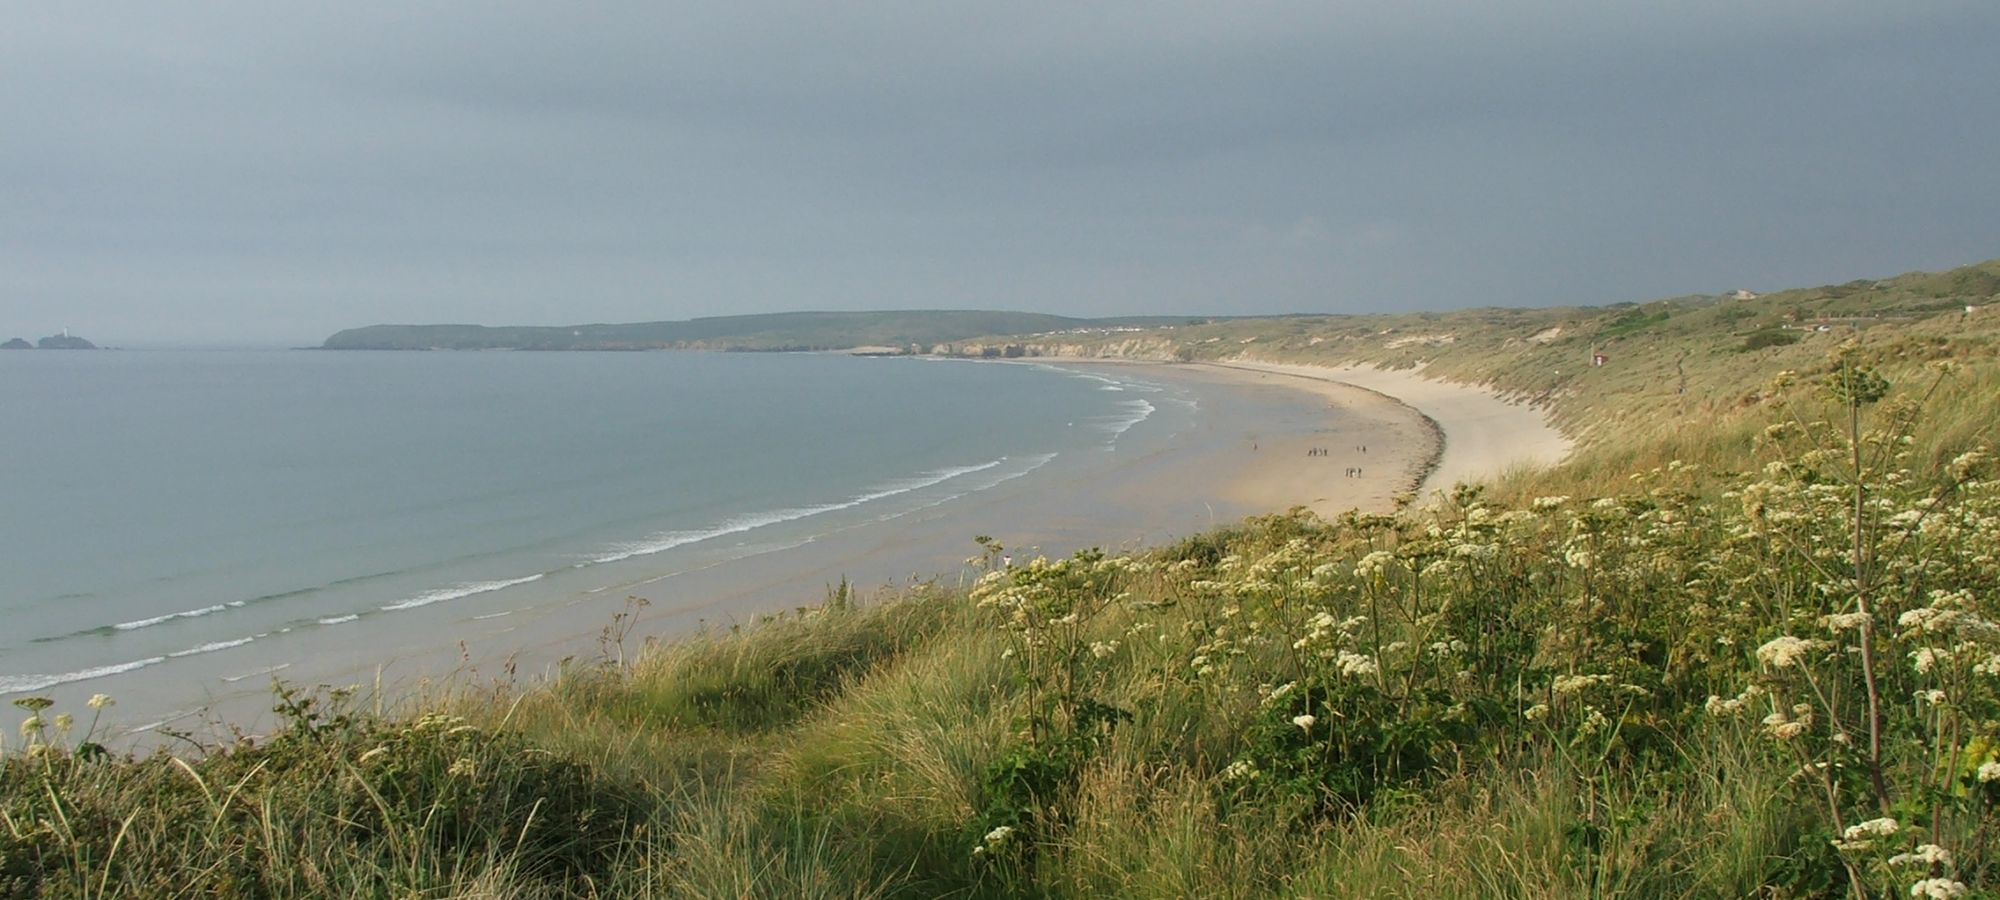 Sand dunes and beach, north coast